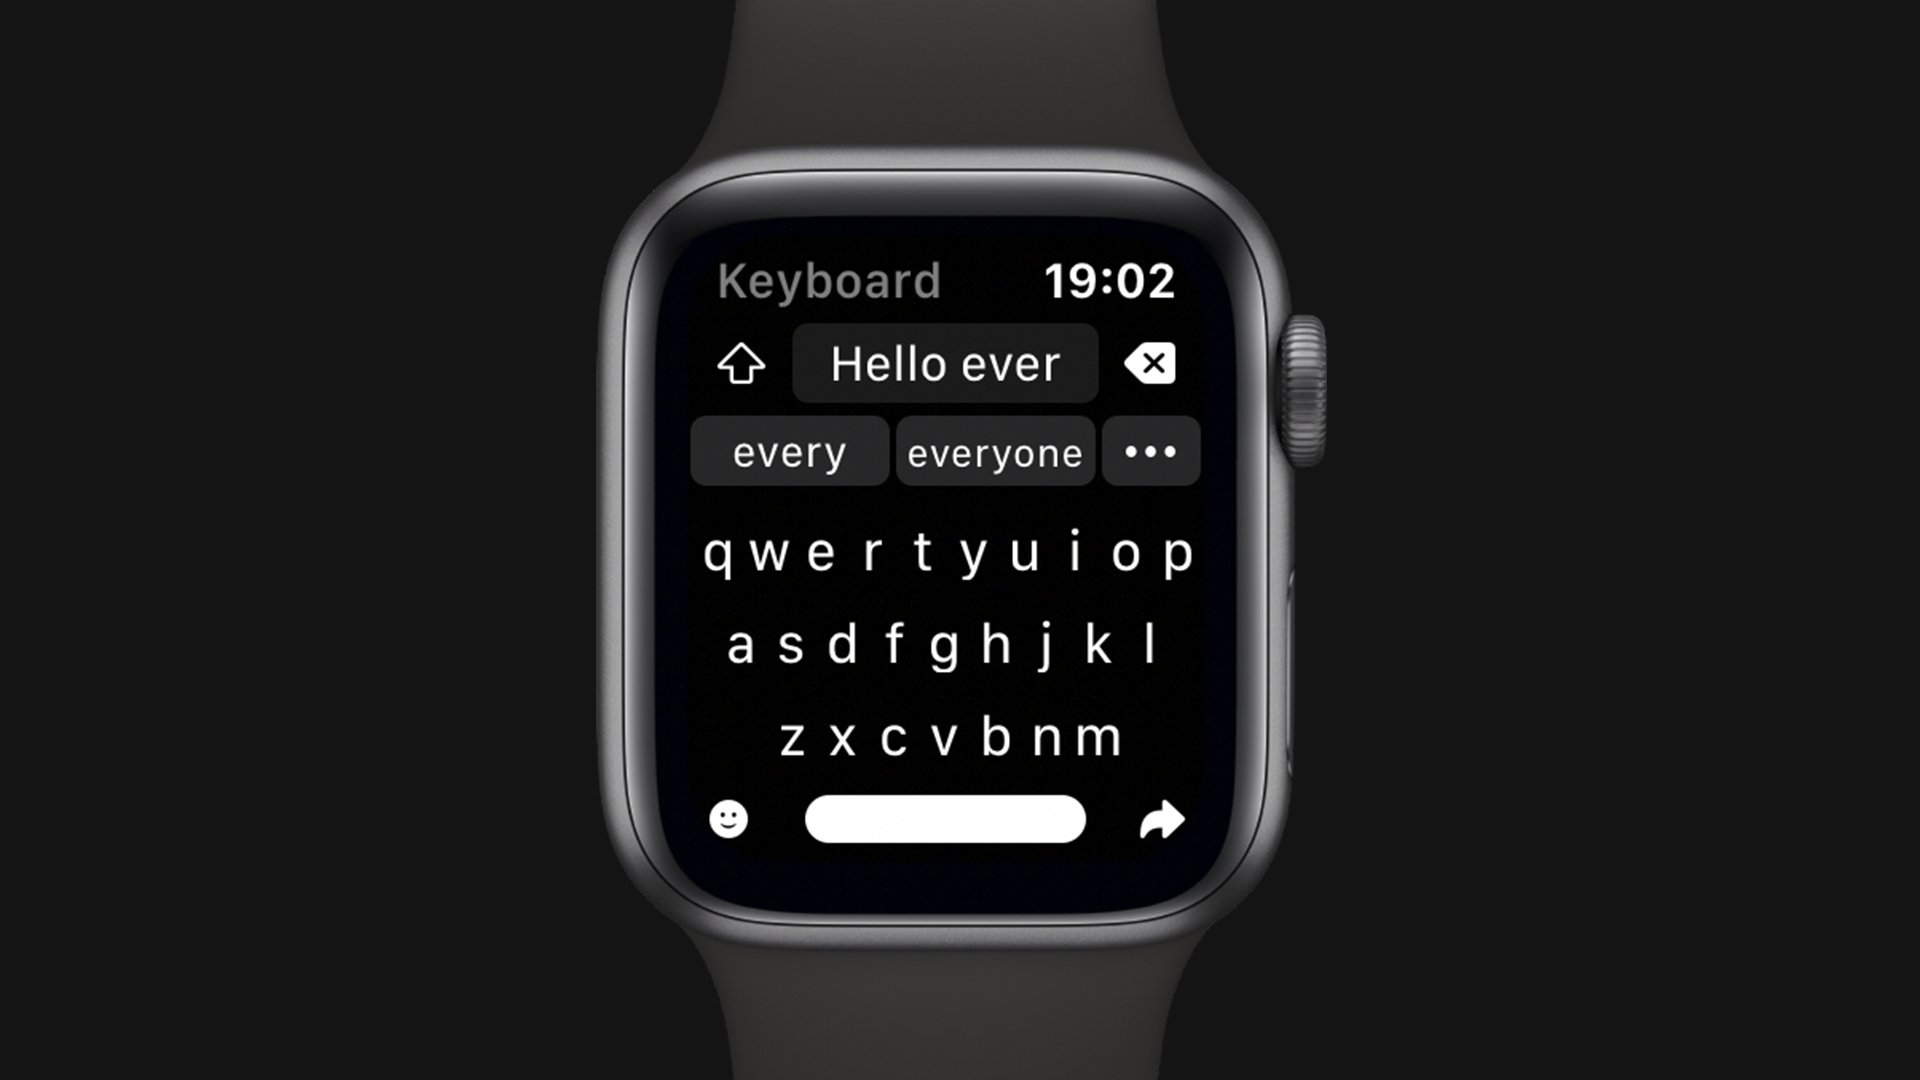 Shift Keyboard introduces a new way to write messages on Apple Watch - 9to5Mac